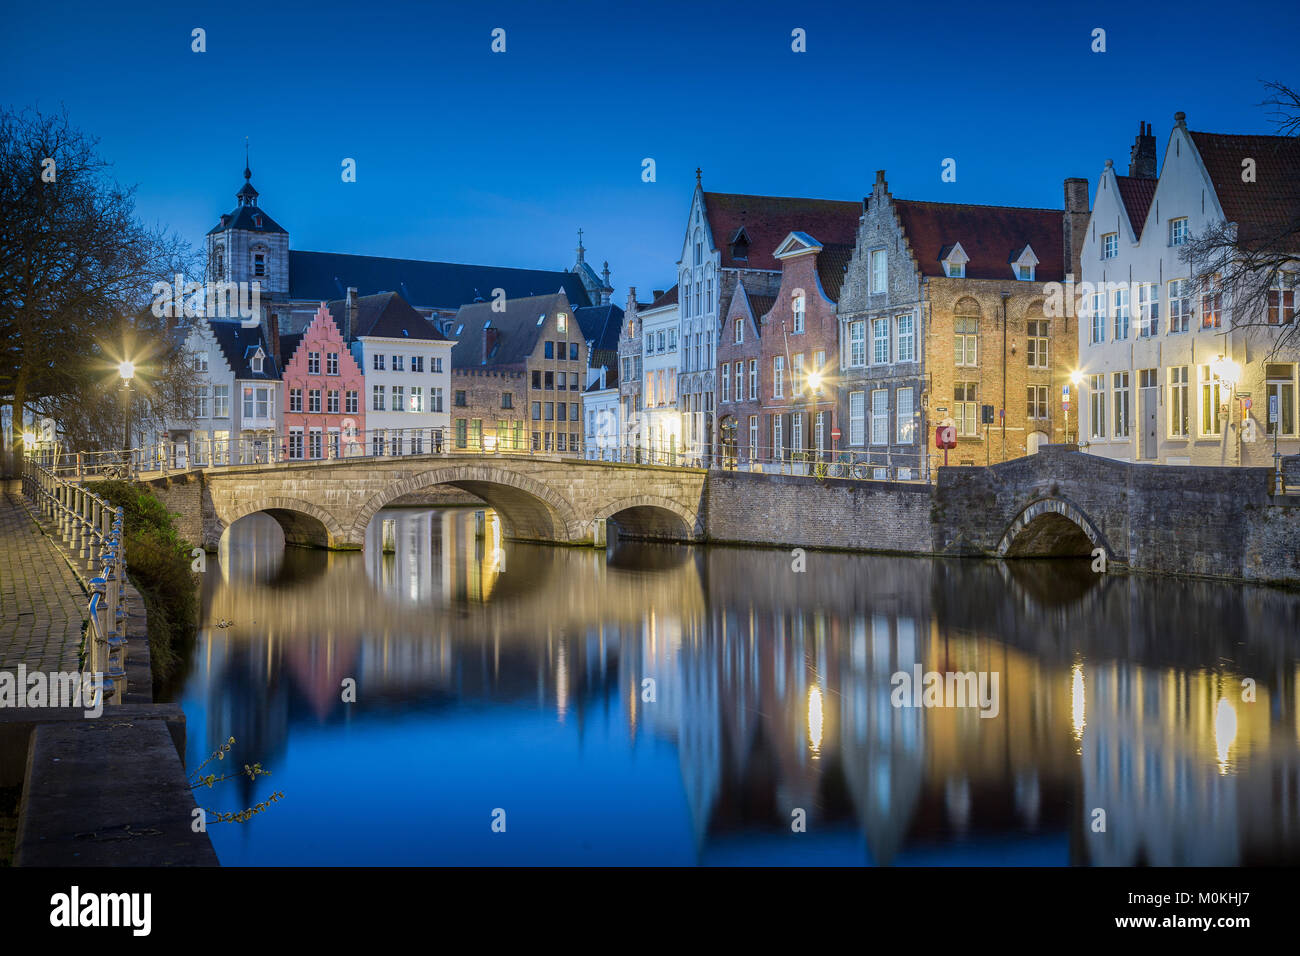 Classic postcard view of the historic city center of Brugge, often referred to as The Venice of the North, with - Stock Image